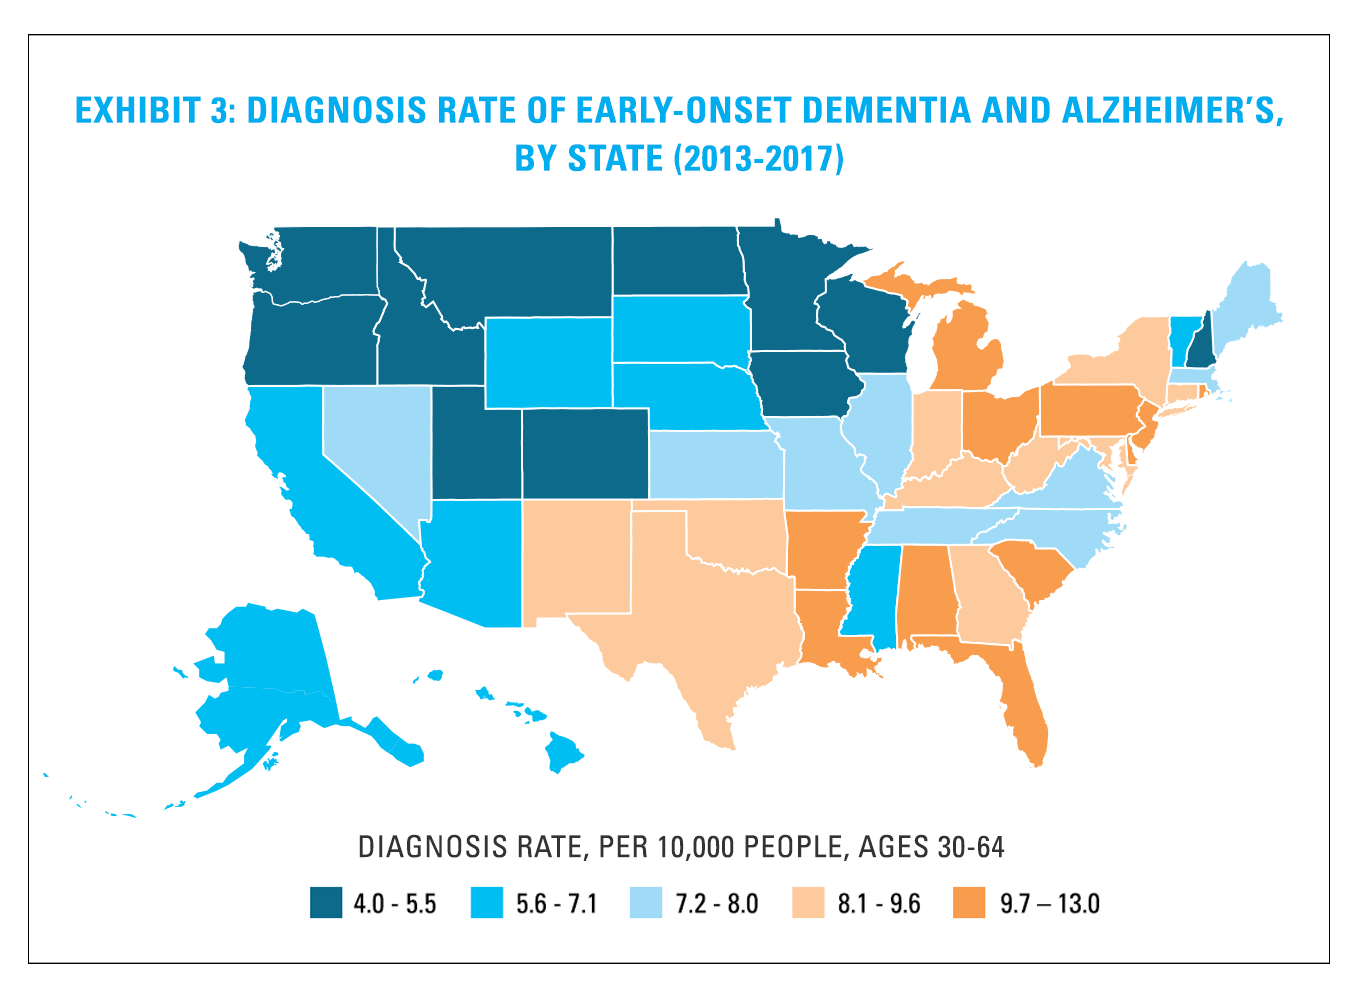 Exhibit 3: Diagnosis Rate of Early-Onset Dementia and Alzheimer's, by State (2013-2017)